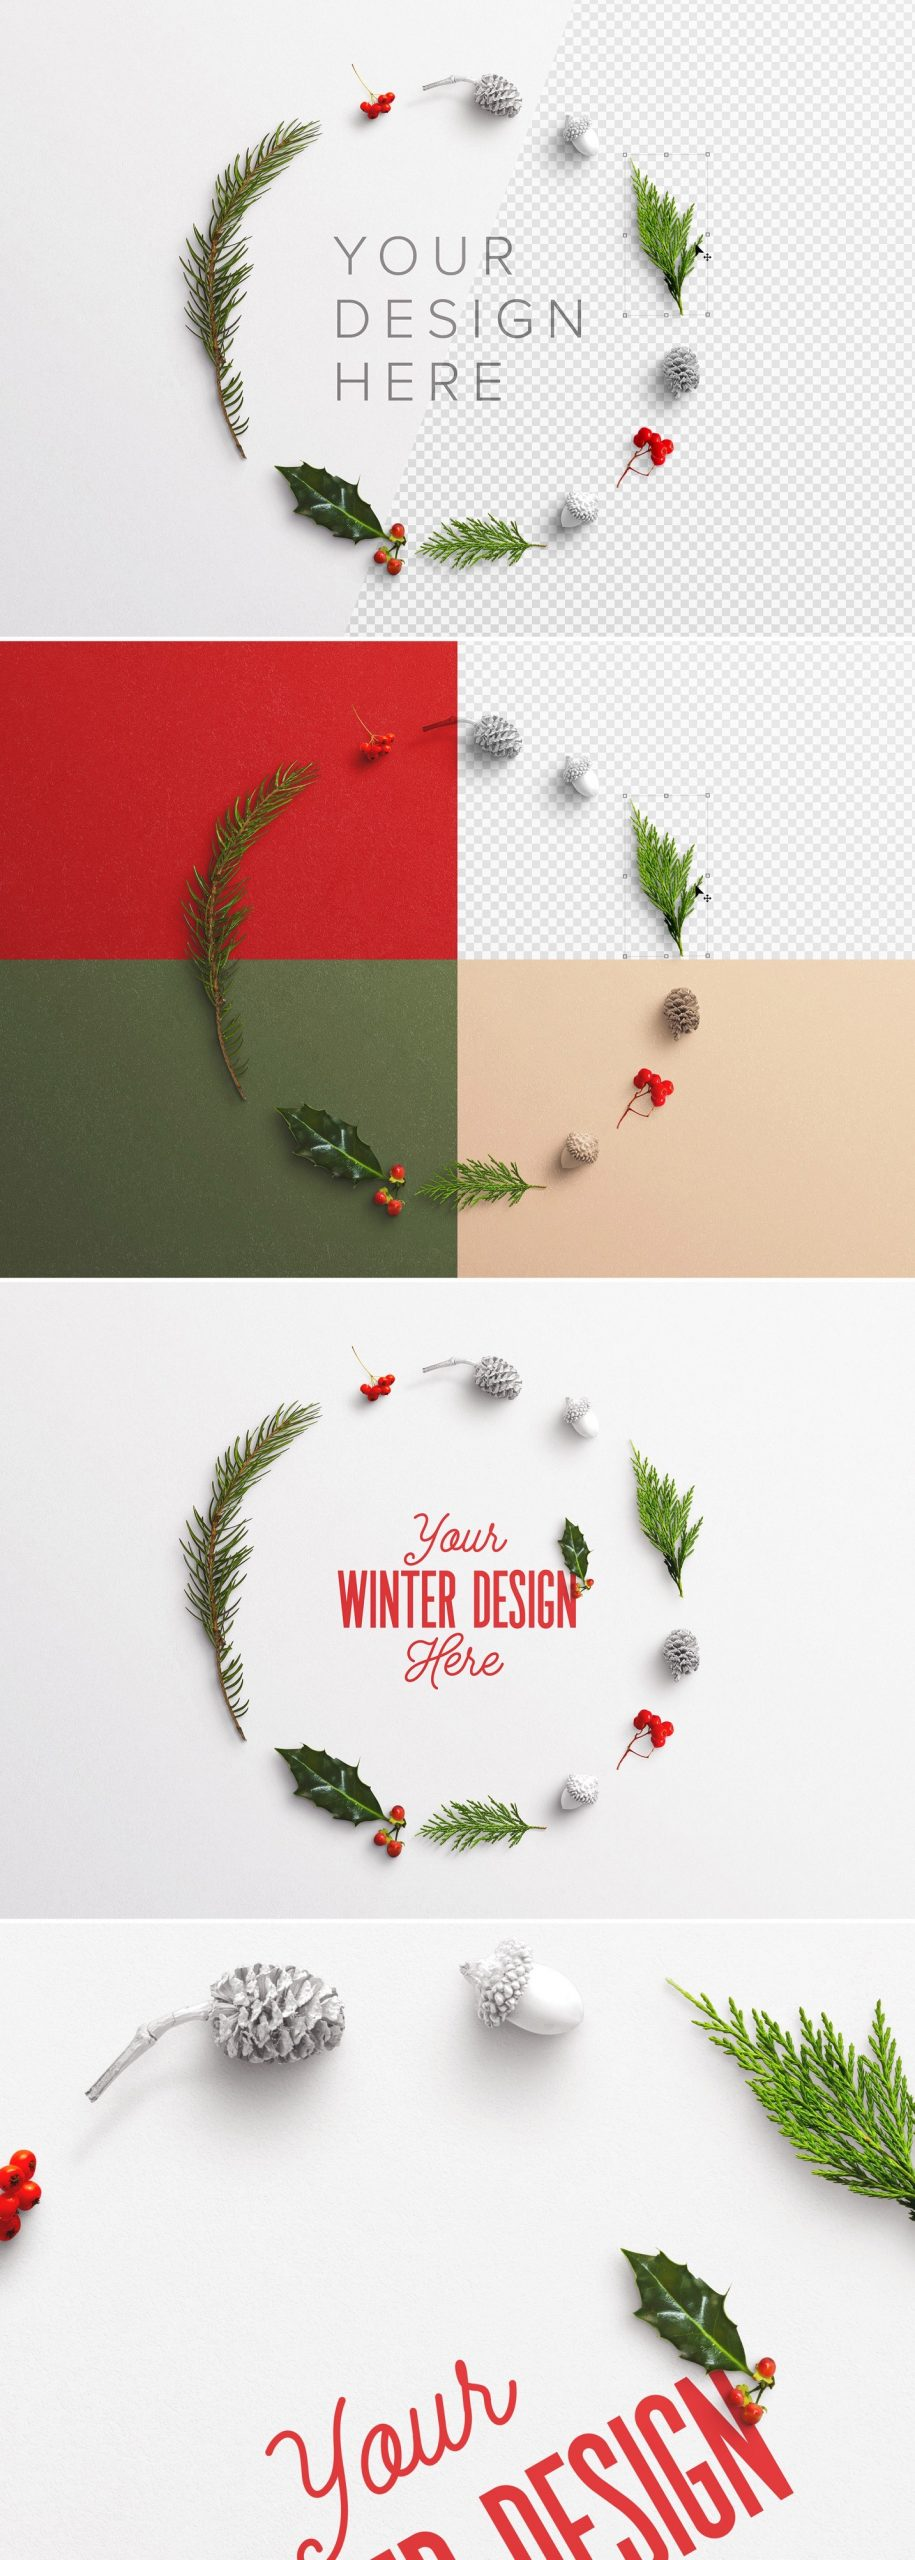 winter frame nature mockup preview1 1 scaled